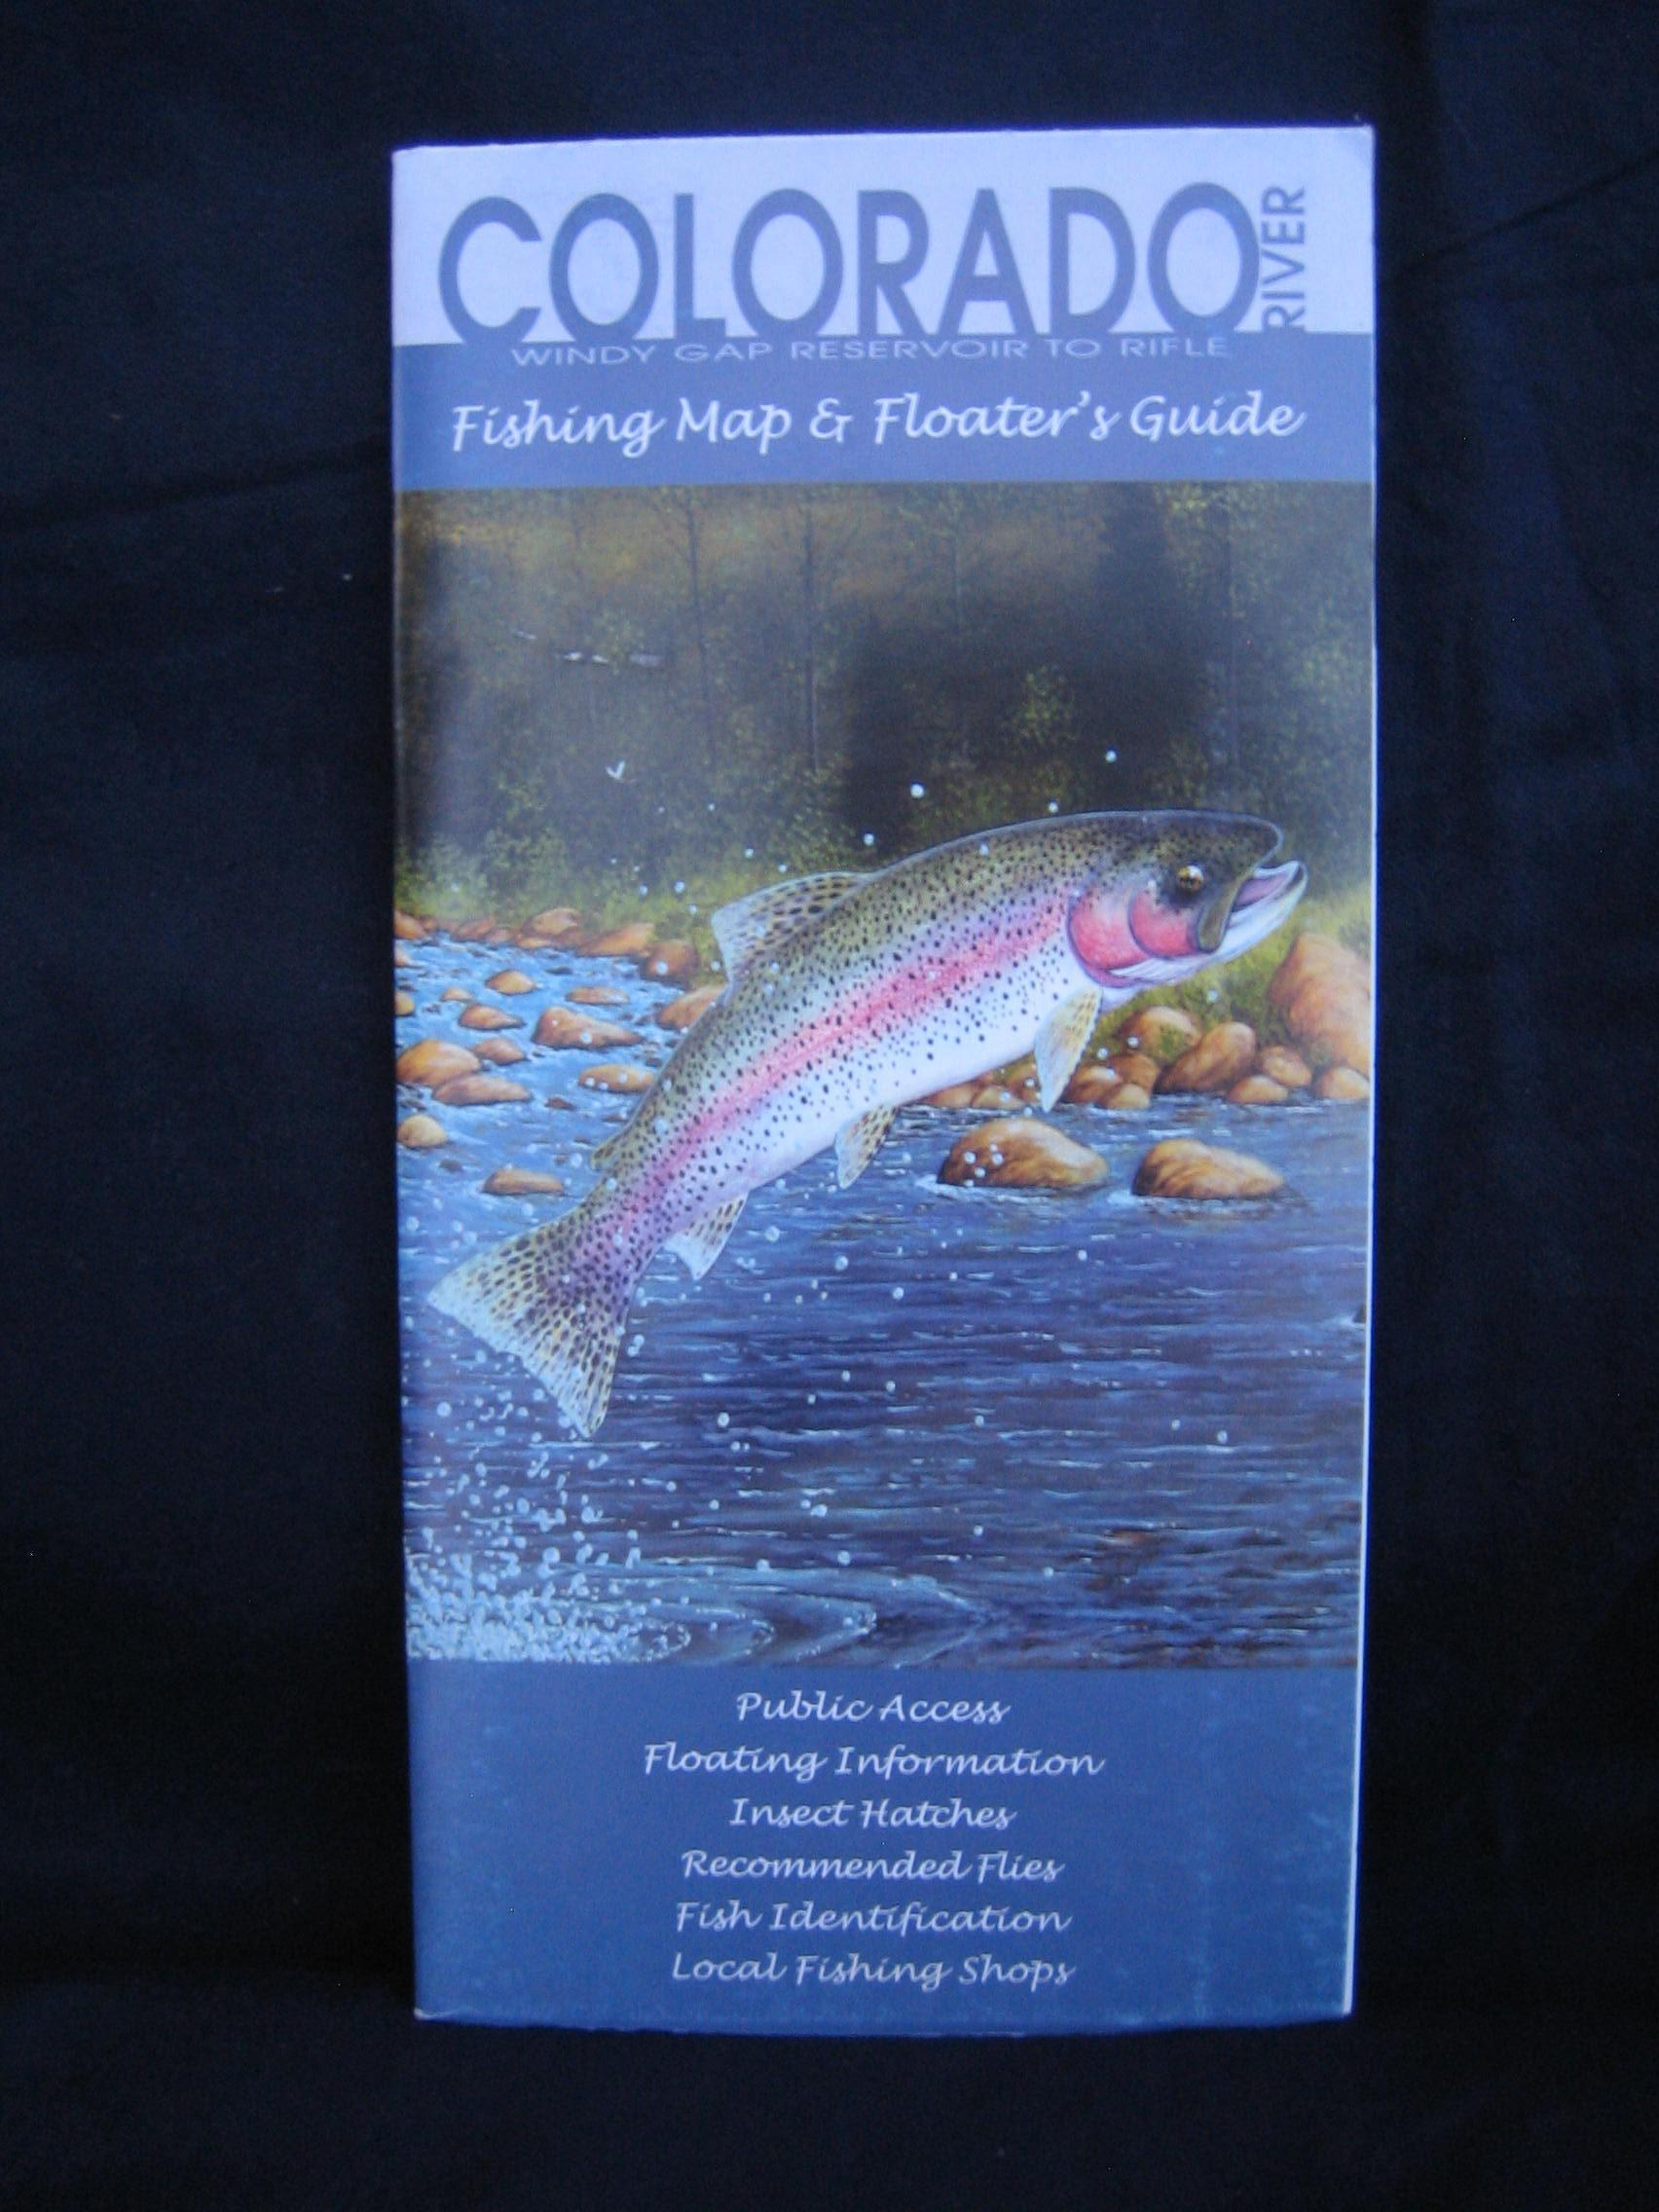 Colorado river fishing map and floater 39 s guide by michael for Colorado fishing guide